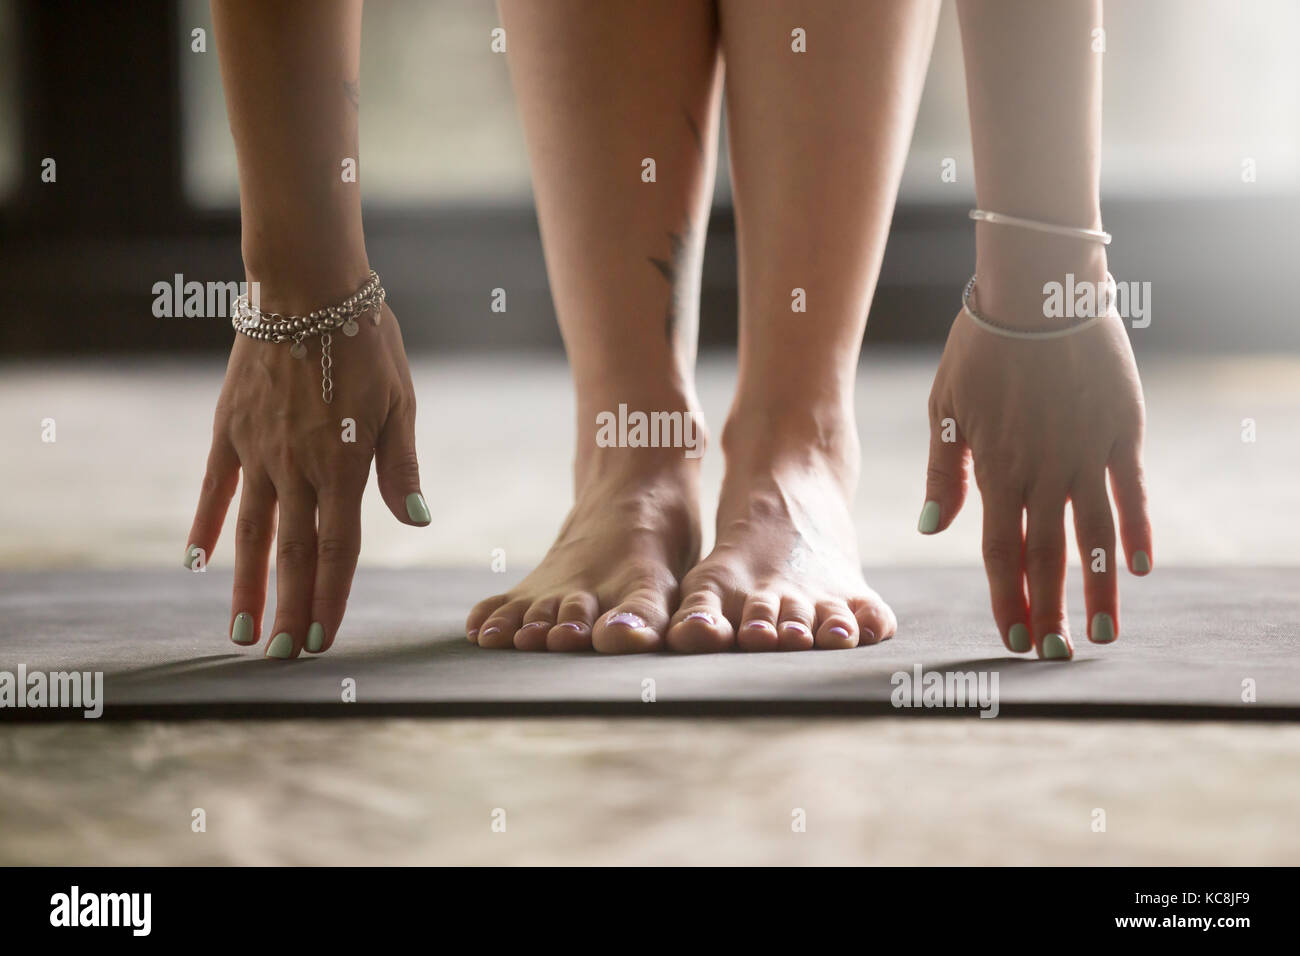 Close up of female hands touching yoga mat - Stock Image